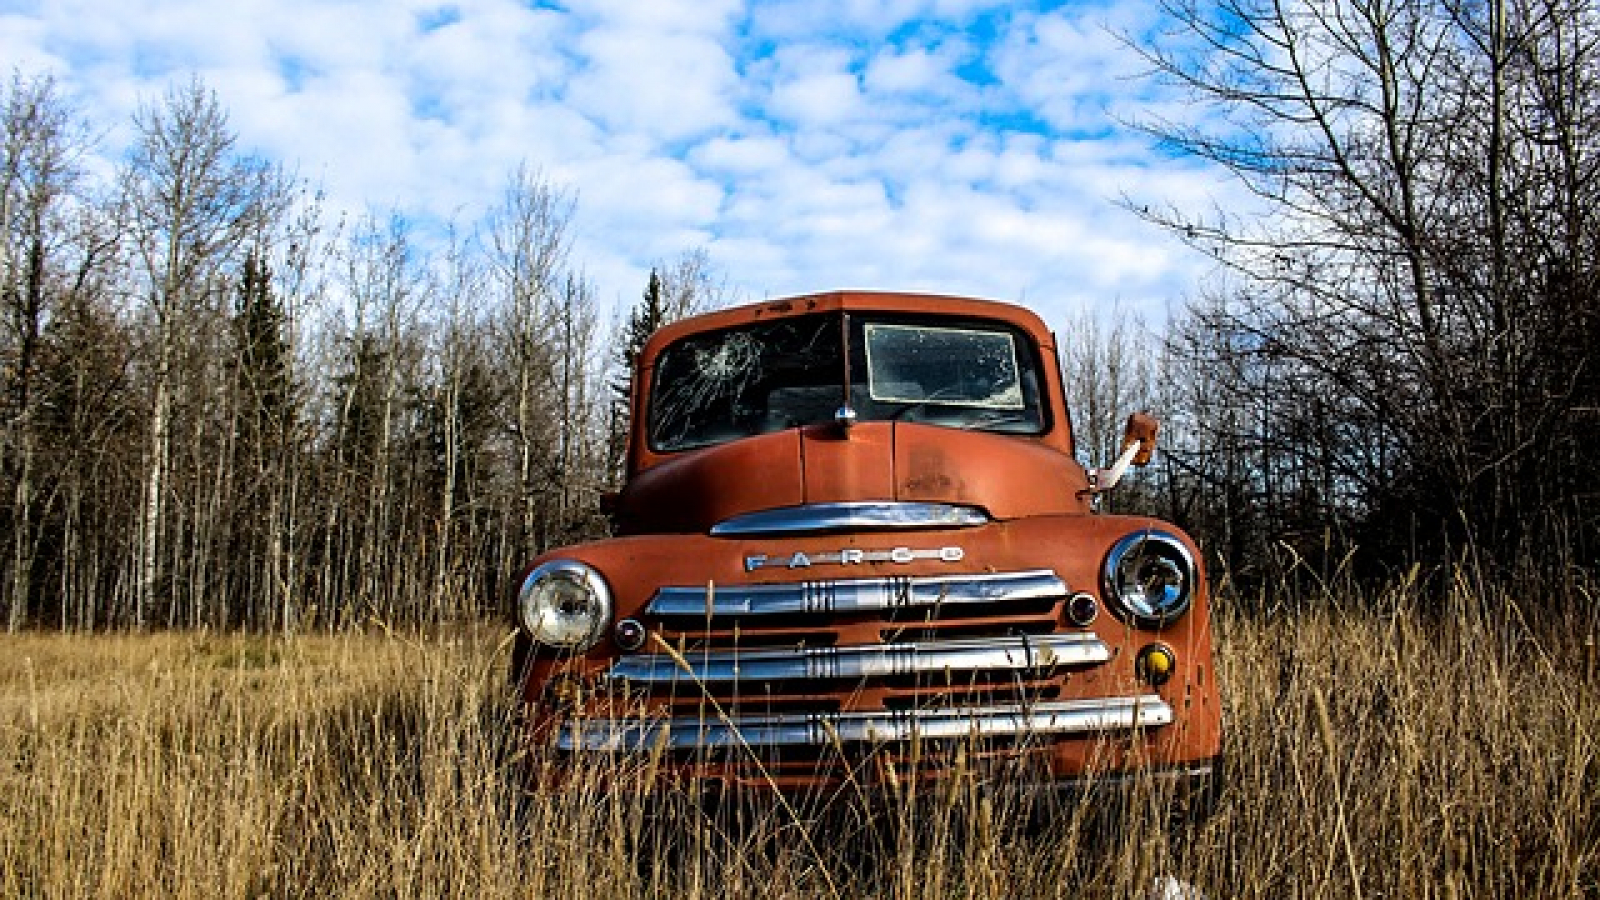 Rusted vintage truck